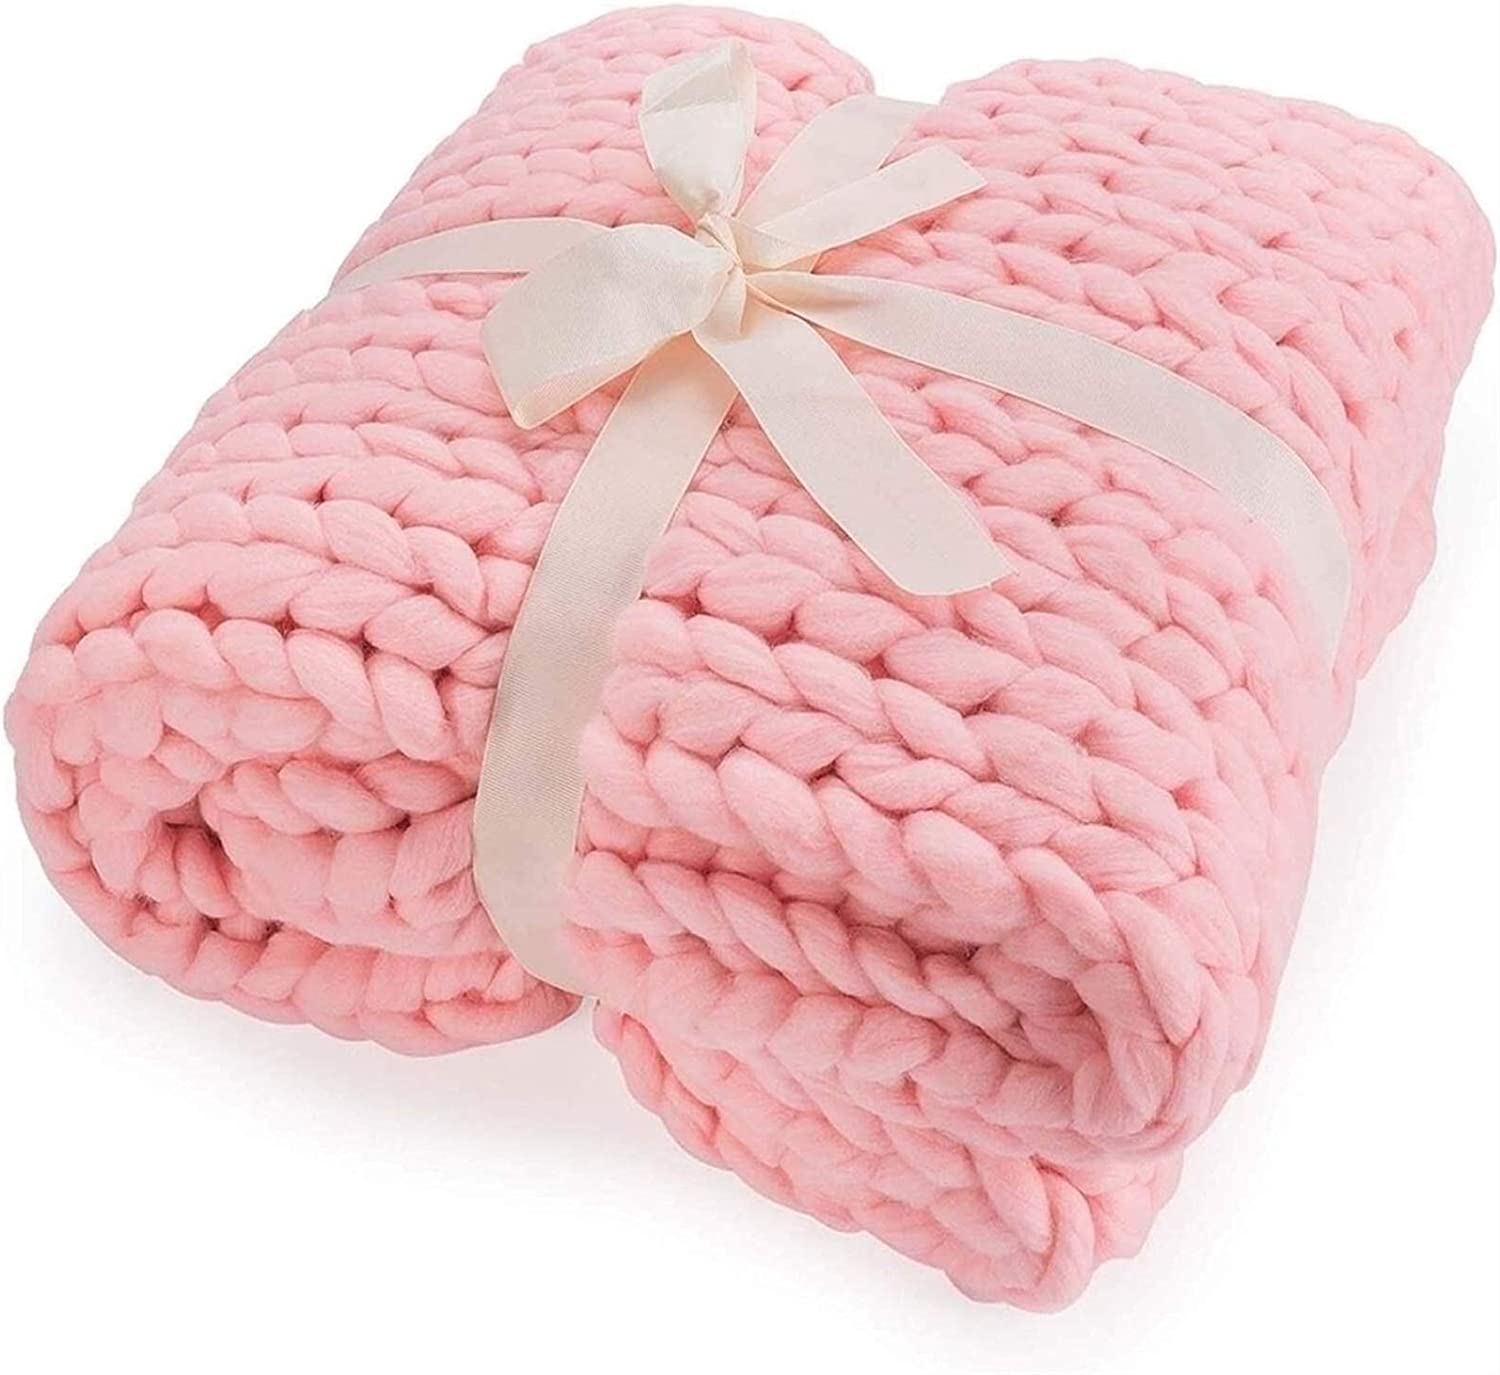 ZCXBHD Knitted Challenge the lowest price of Japan ☆ Blanket Chunky Braided Throw latest Knot Crochet Knit Ve